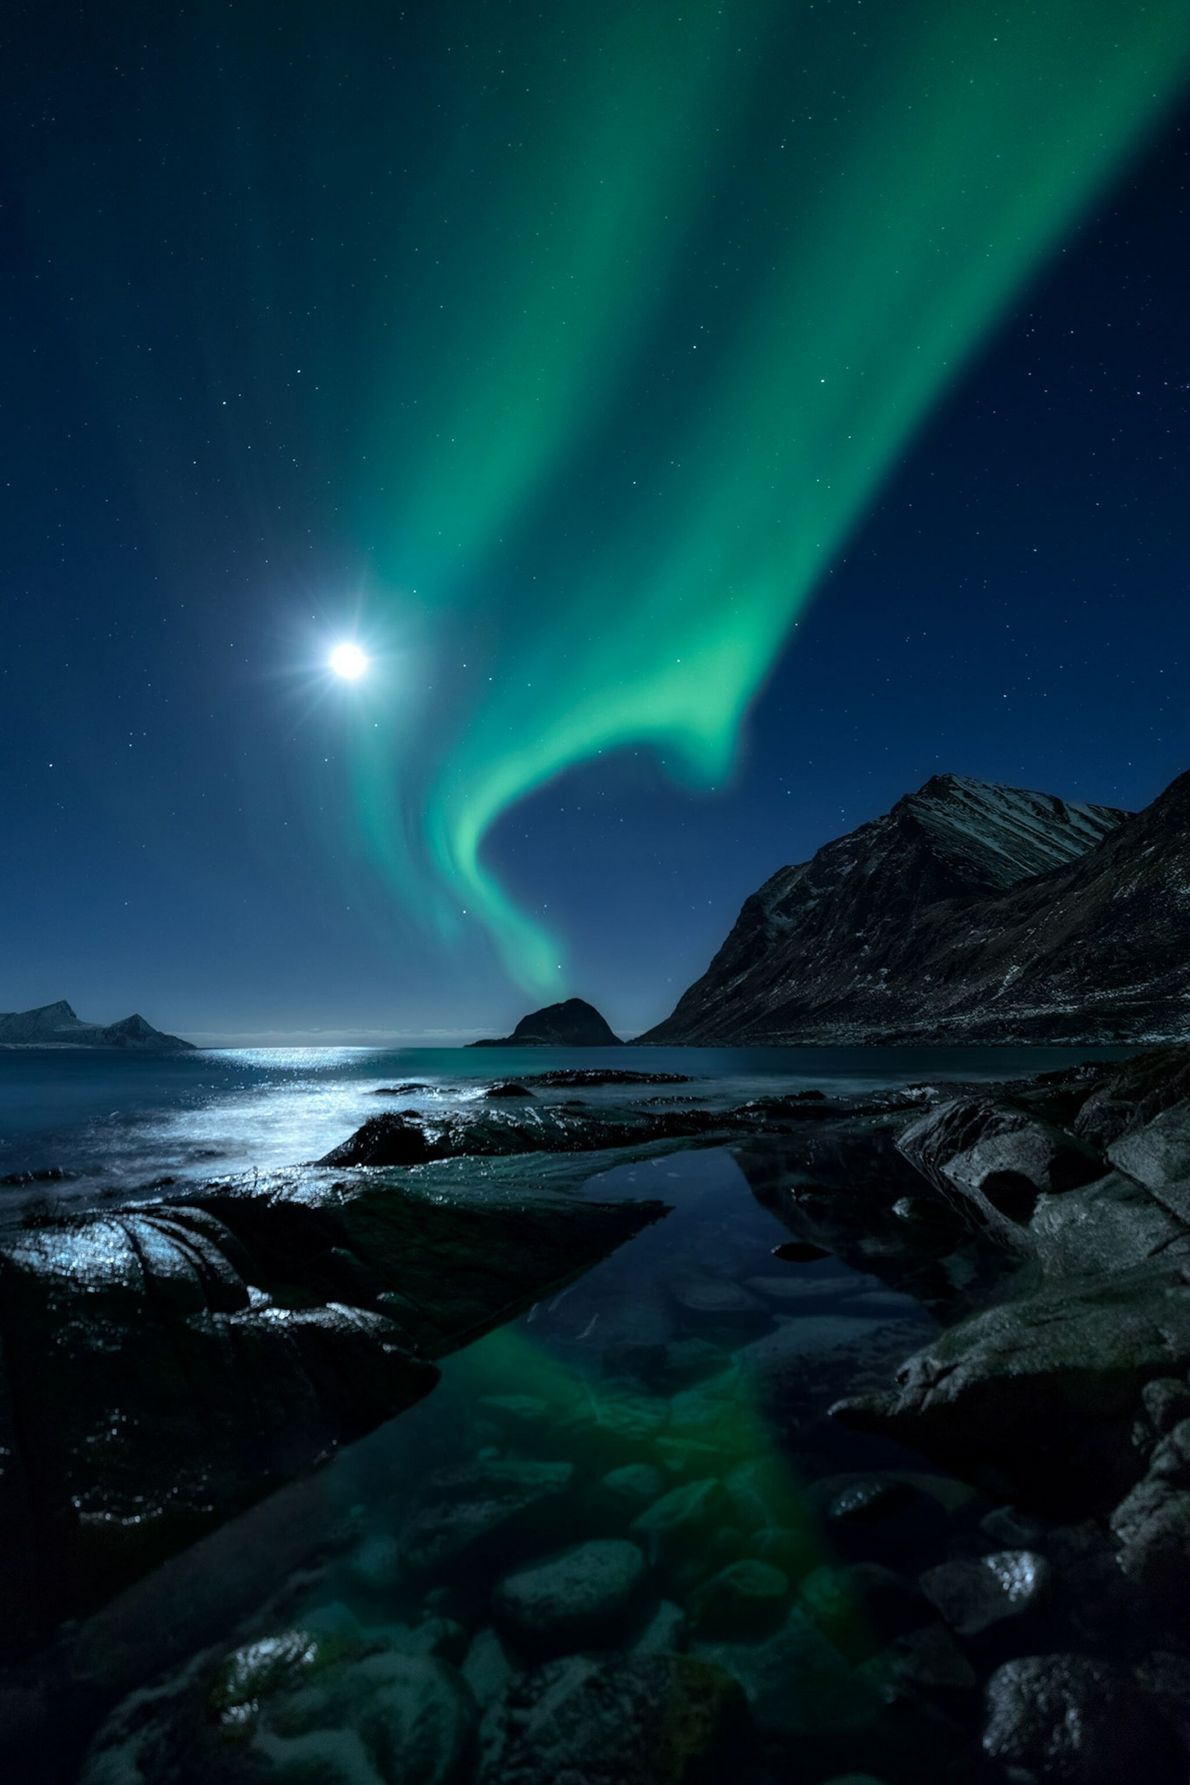 04_astronomy_photo_winners_aurorascape-mikkel-beiter